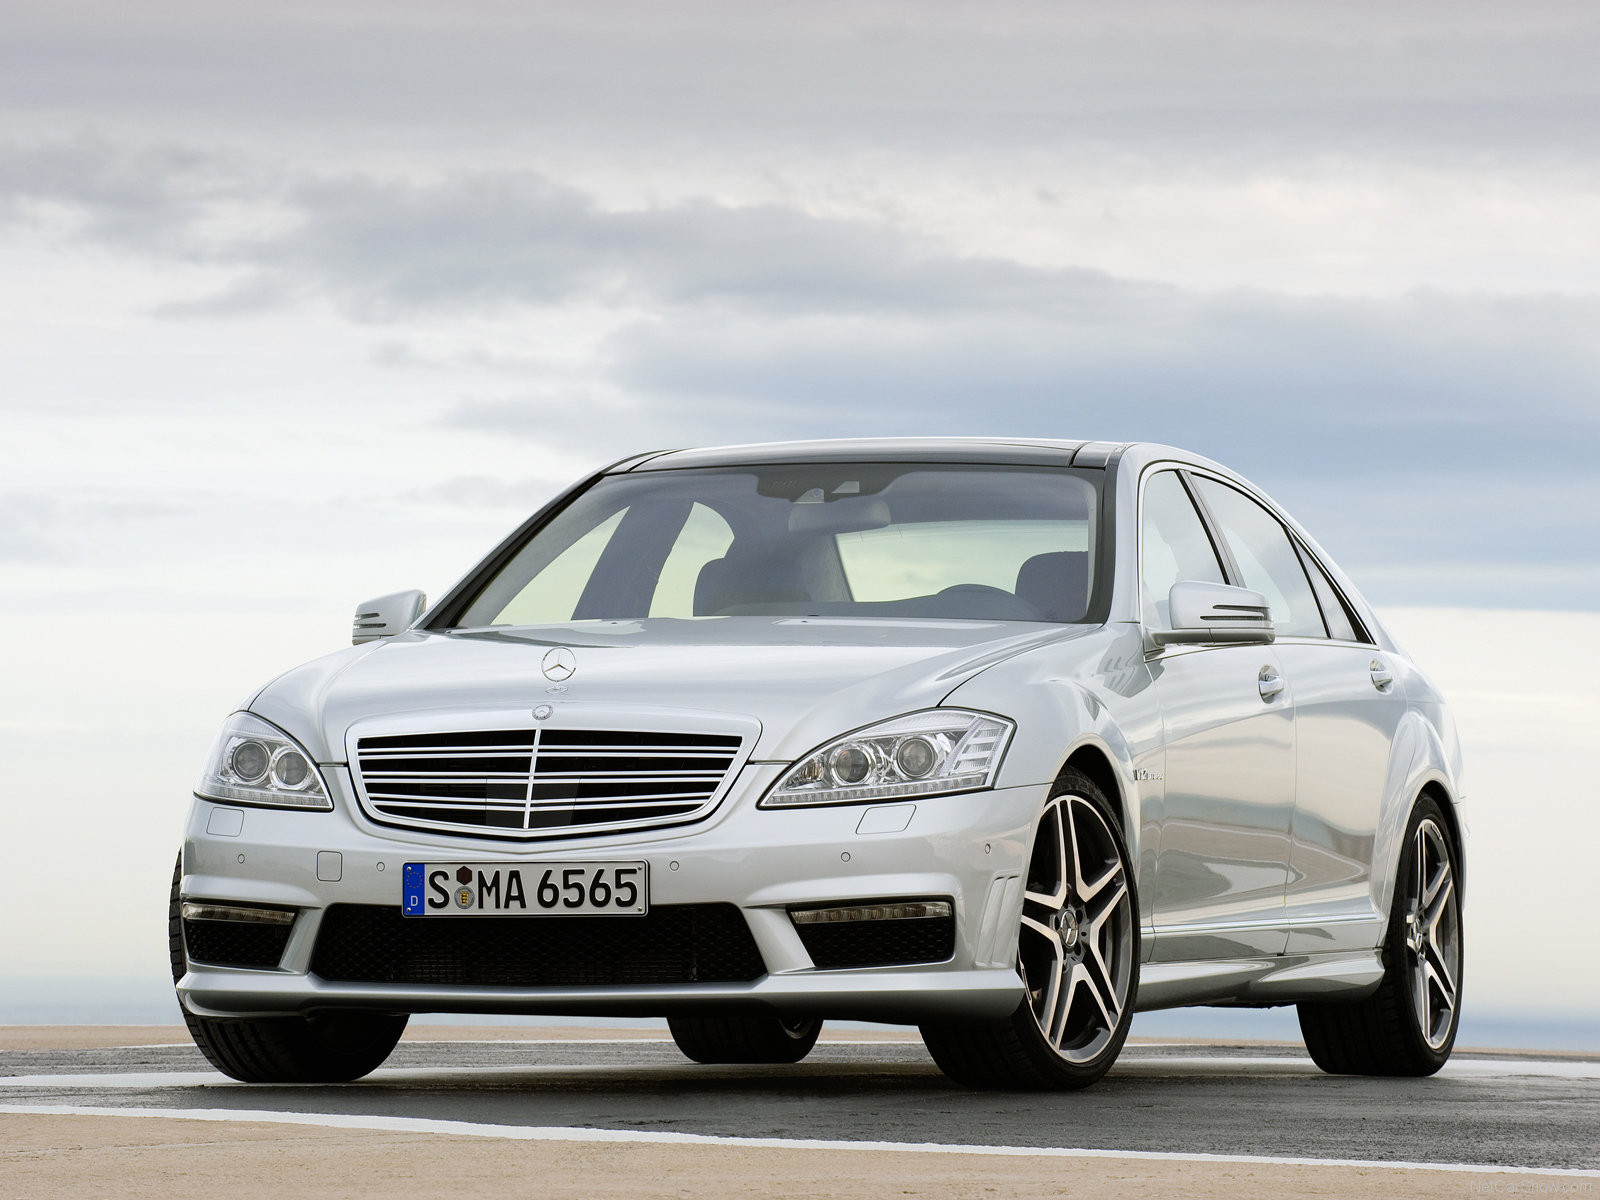 Hot car pictures gallery 2010 mercedes benz s65 amg for Mercedes benz s class amg 2010